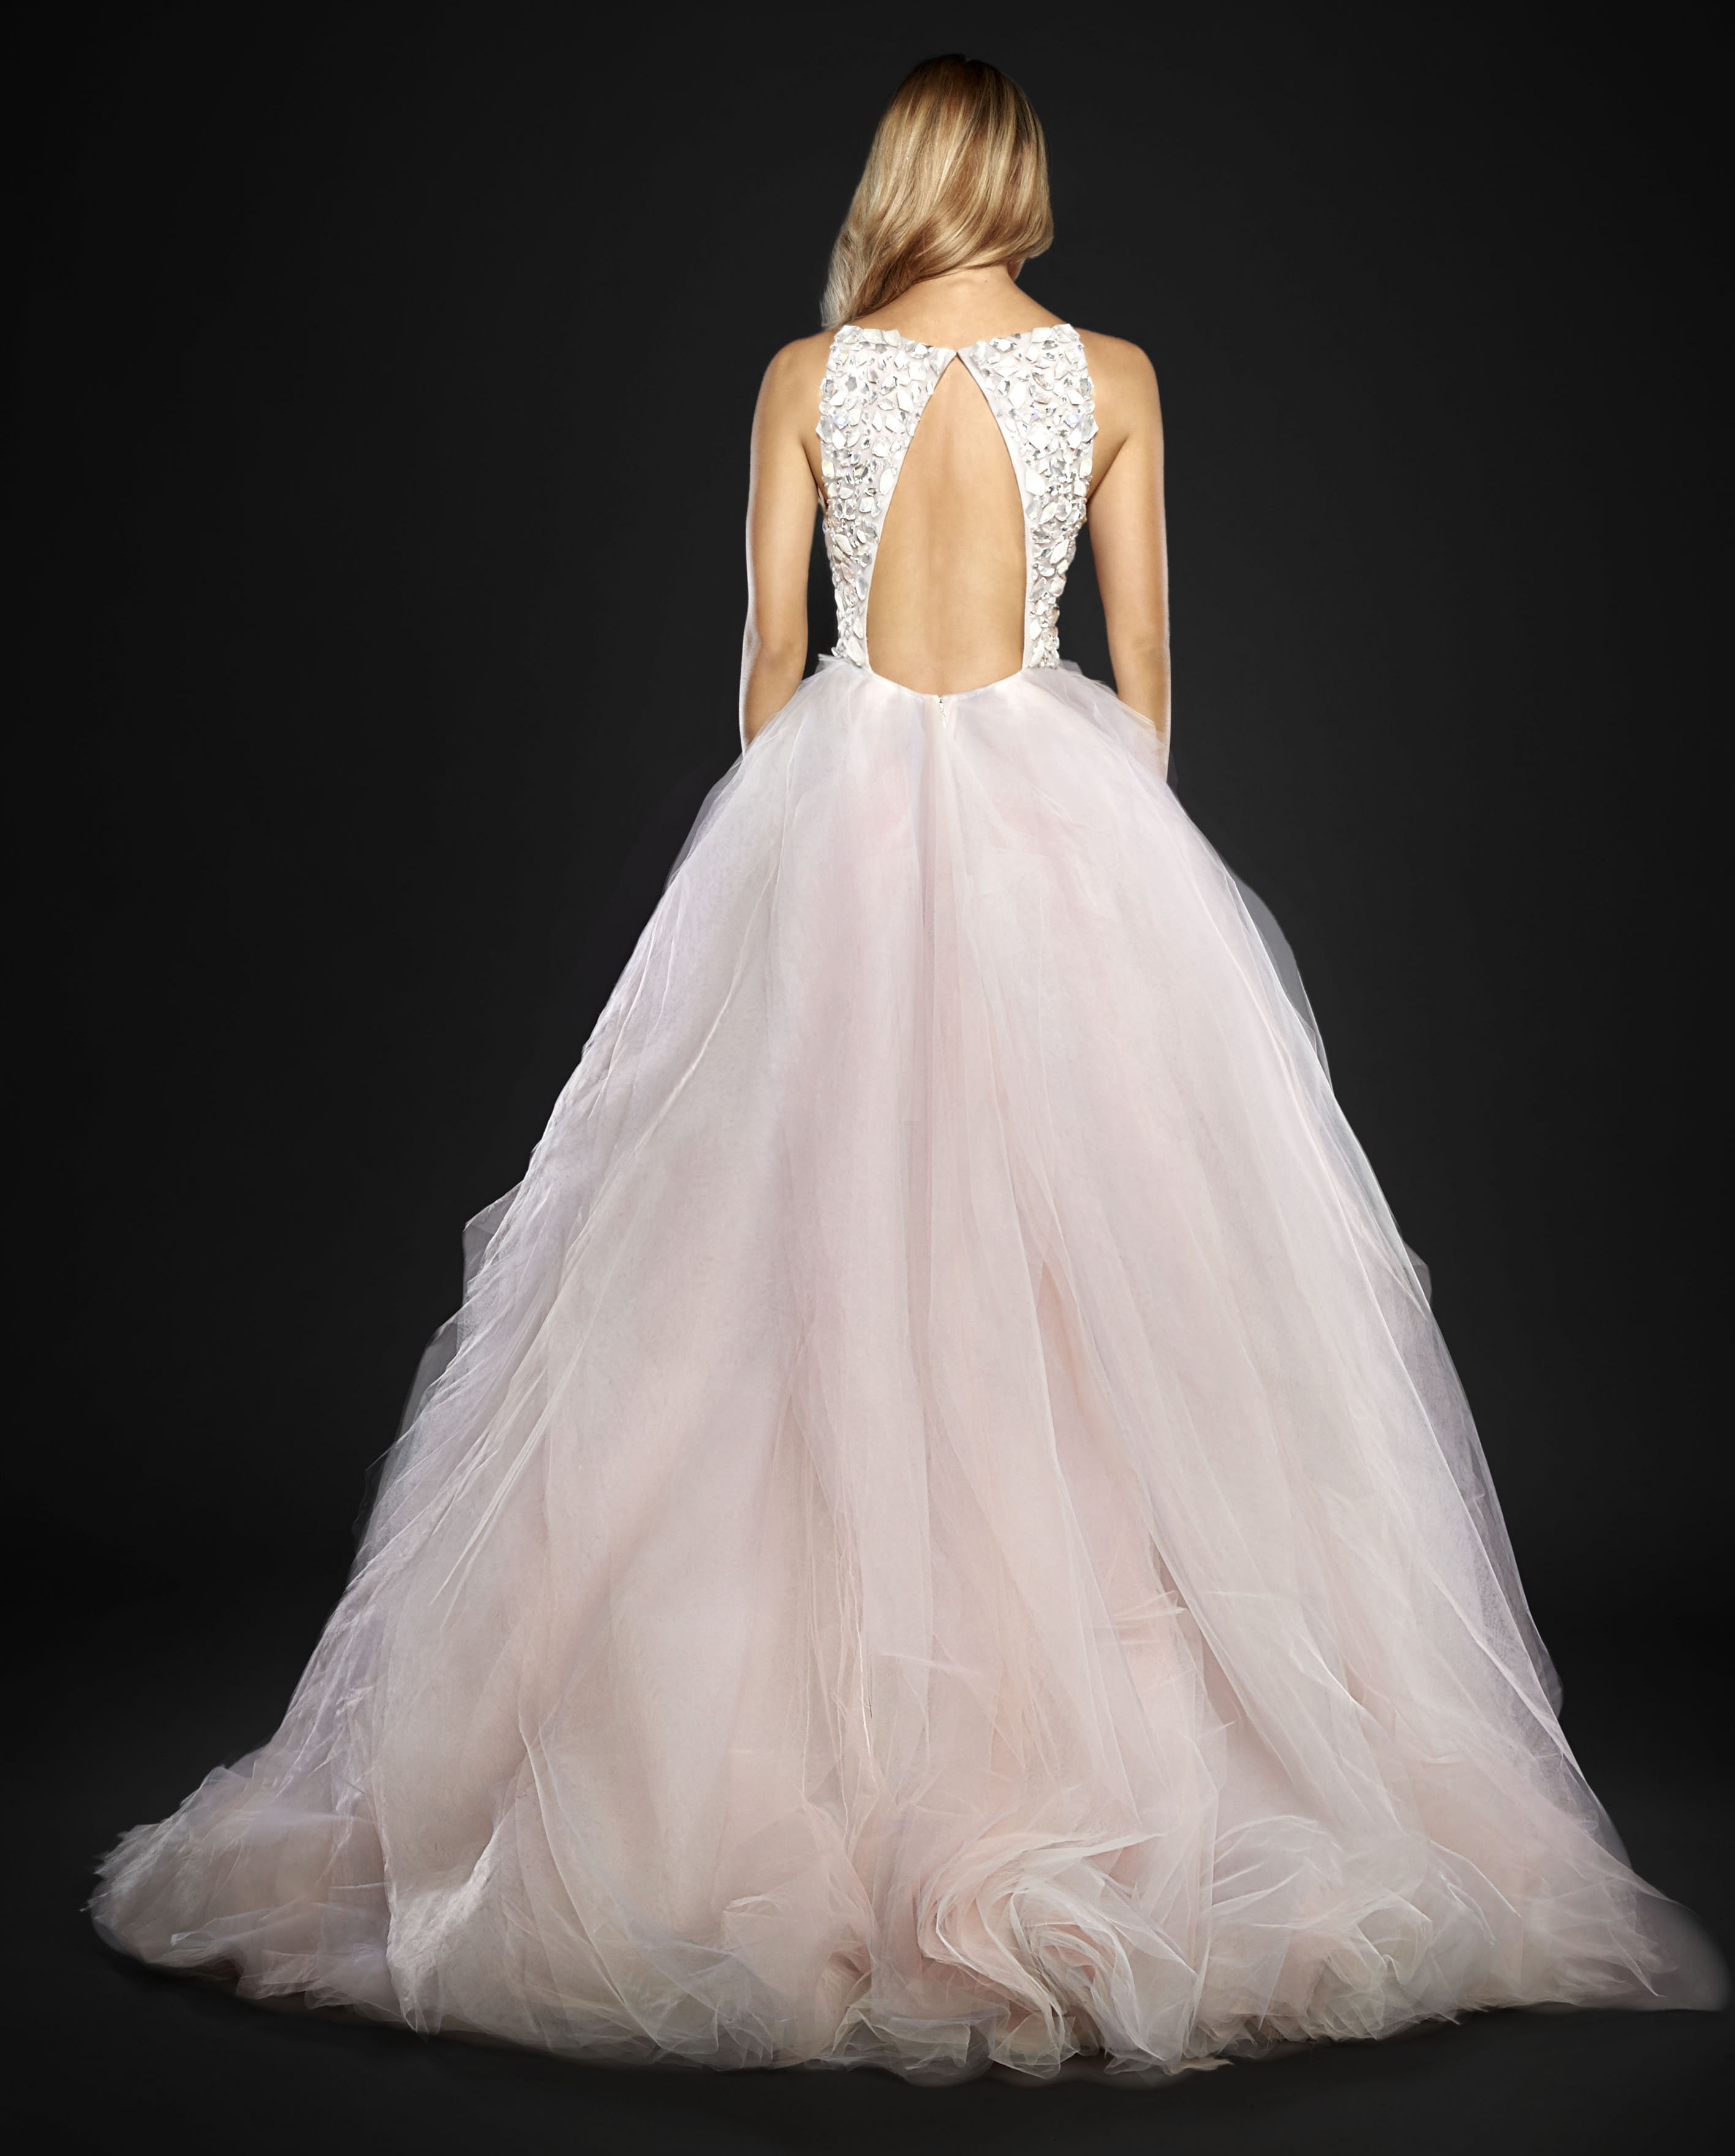 Bridal Gowns and Wedding Dresses by JLM Couture - Style 6712 Jem